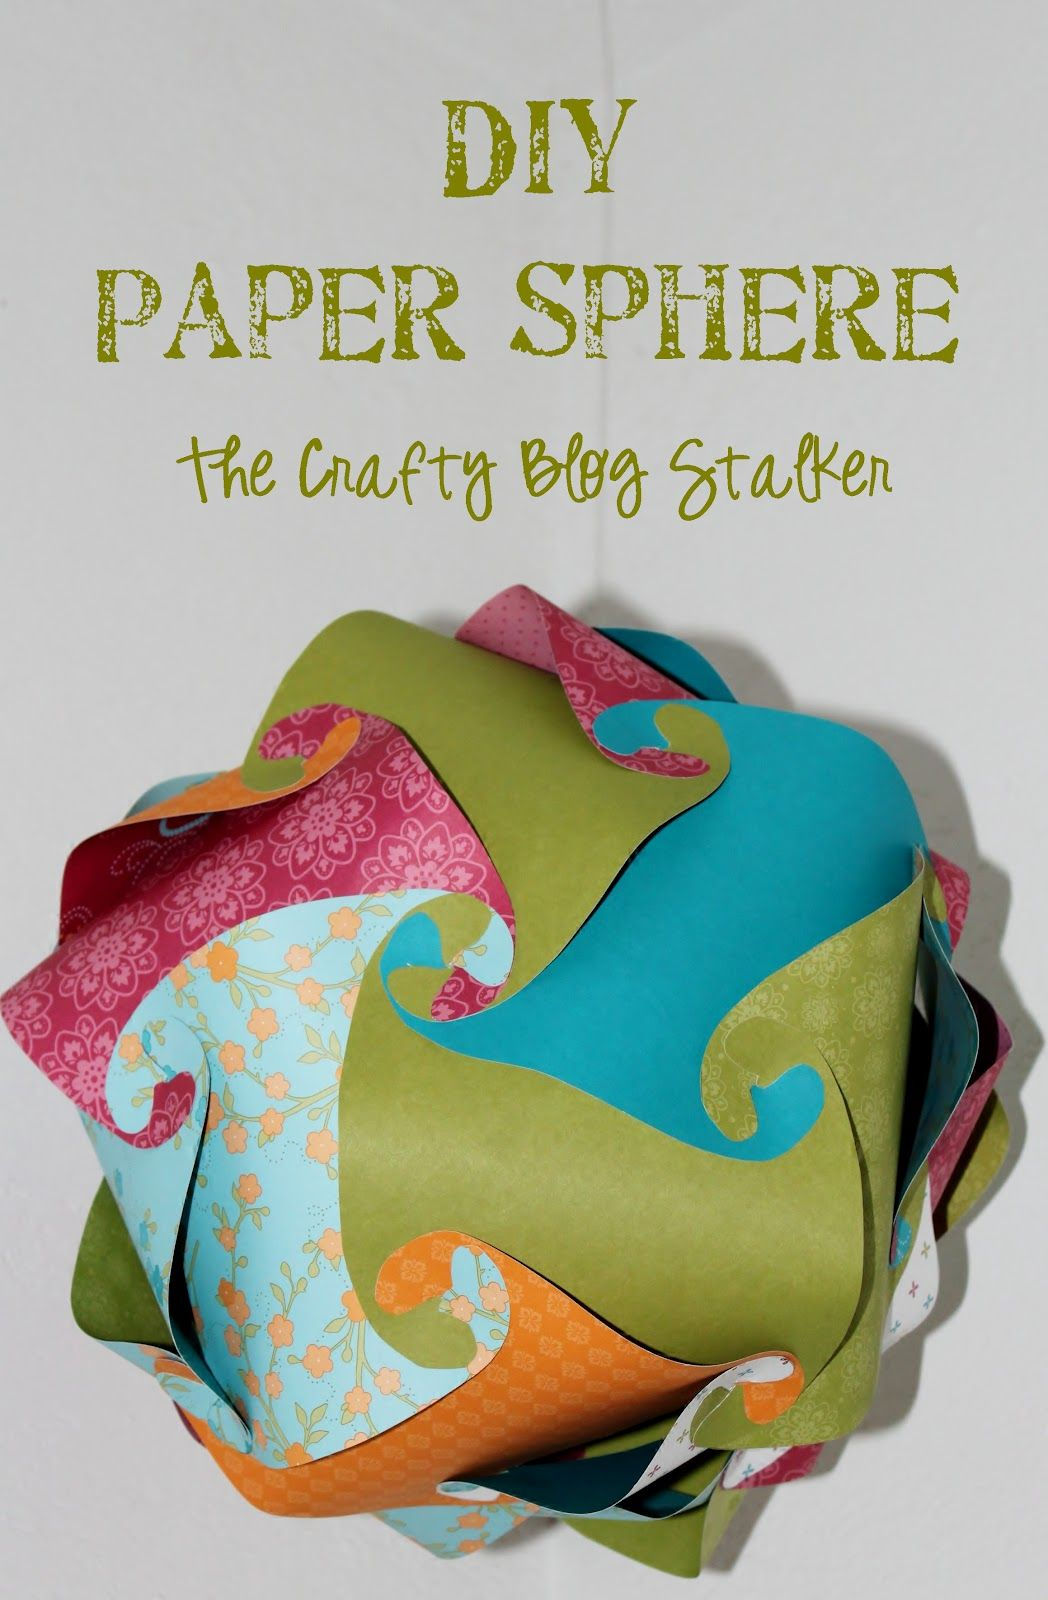 How to Make a Paper Sphere | DIY From The Crafty Blog ... - photo#34